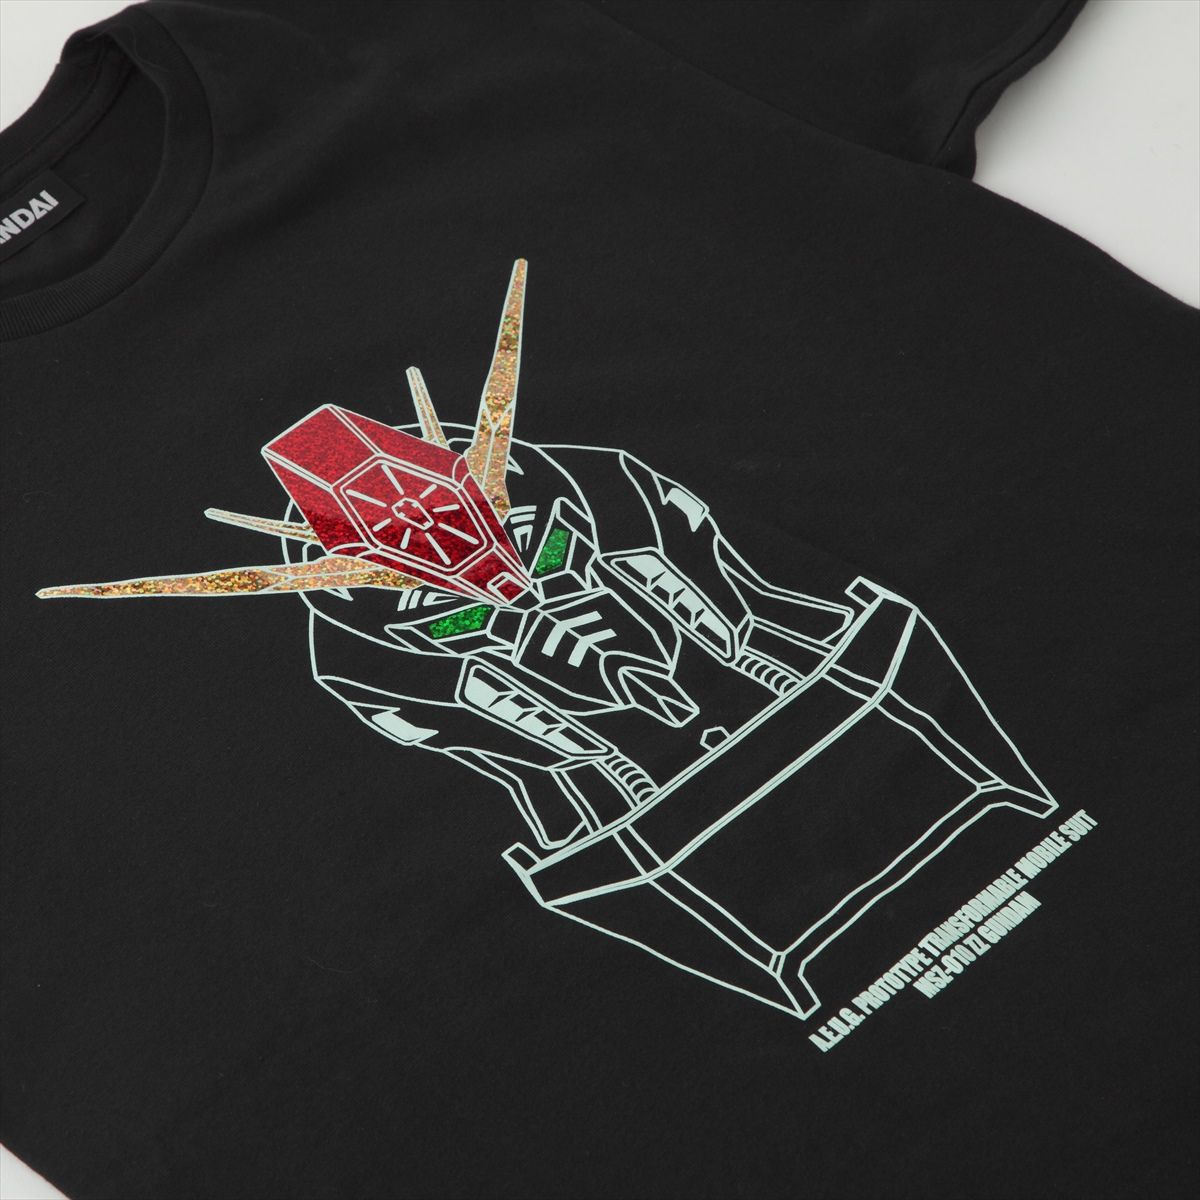 Mobile Suit Gundam ZZ Hologram T-shirt